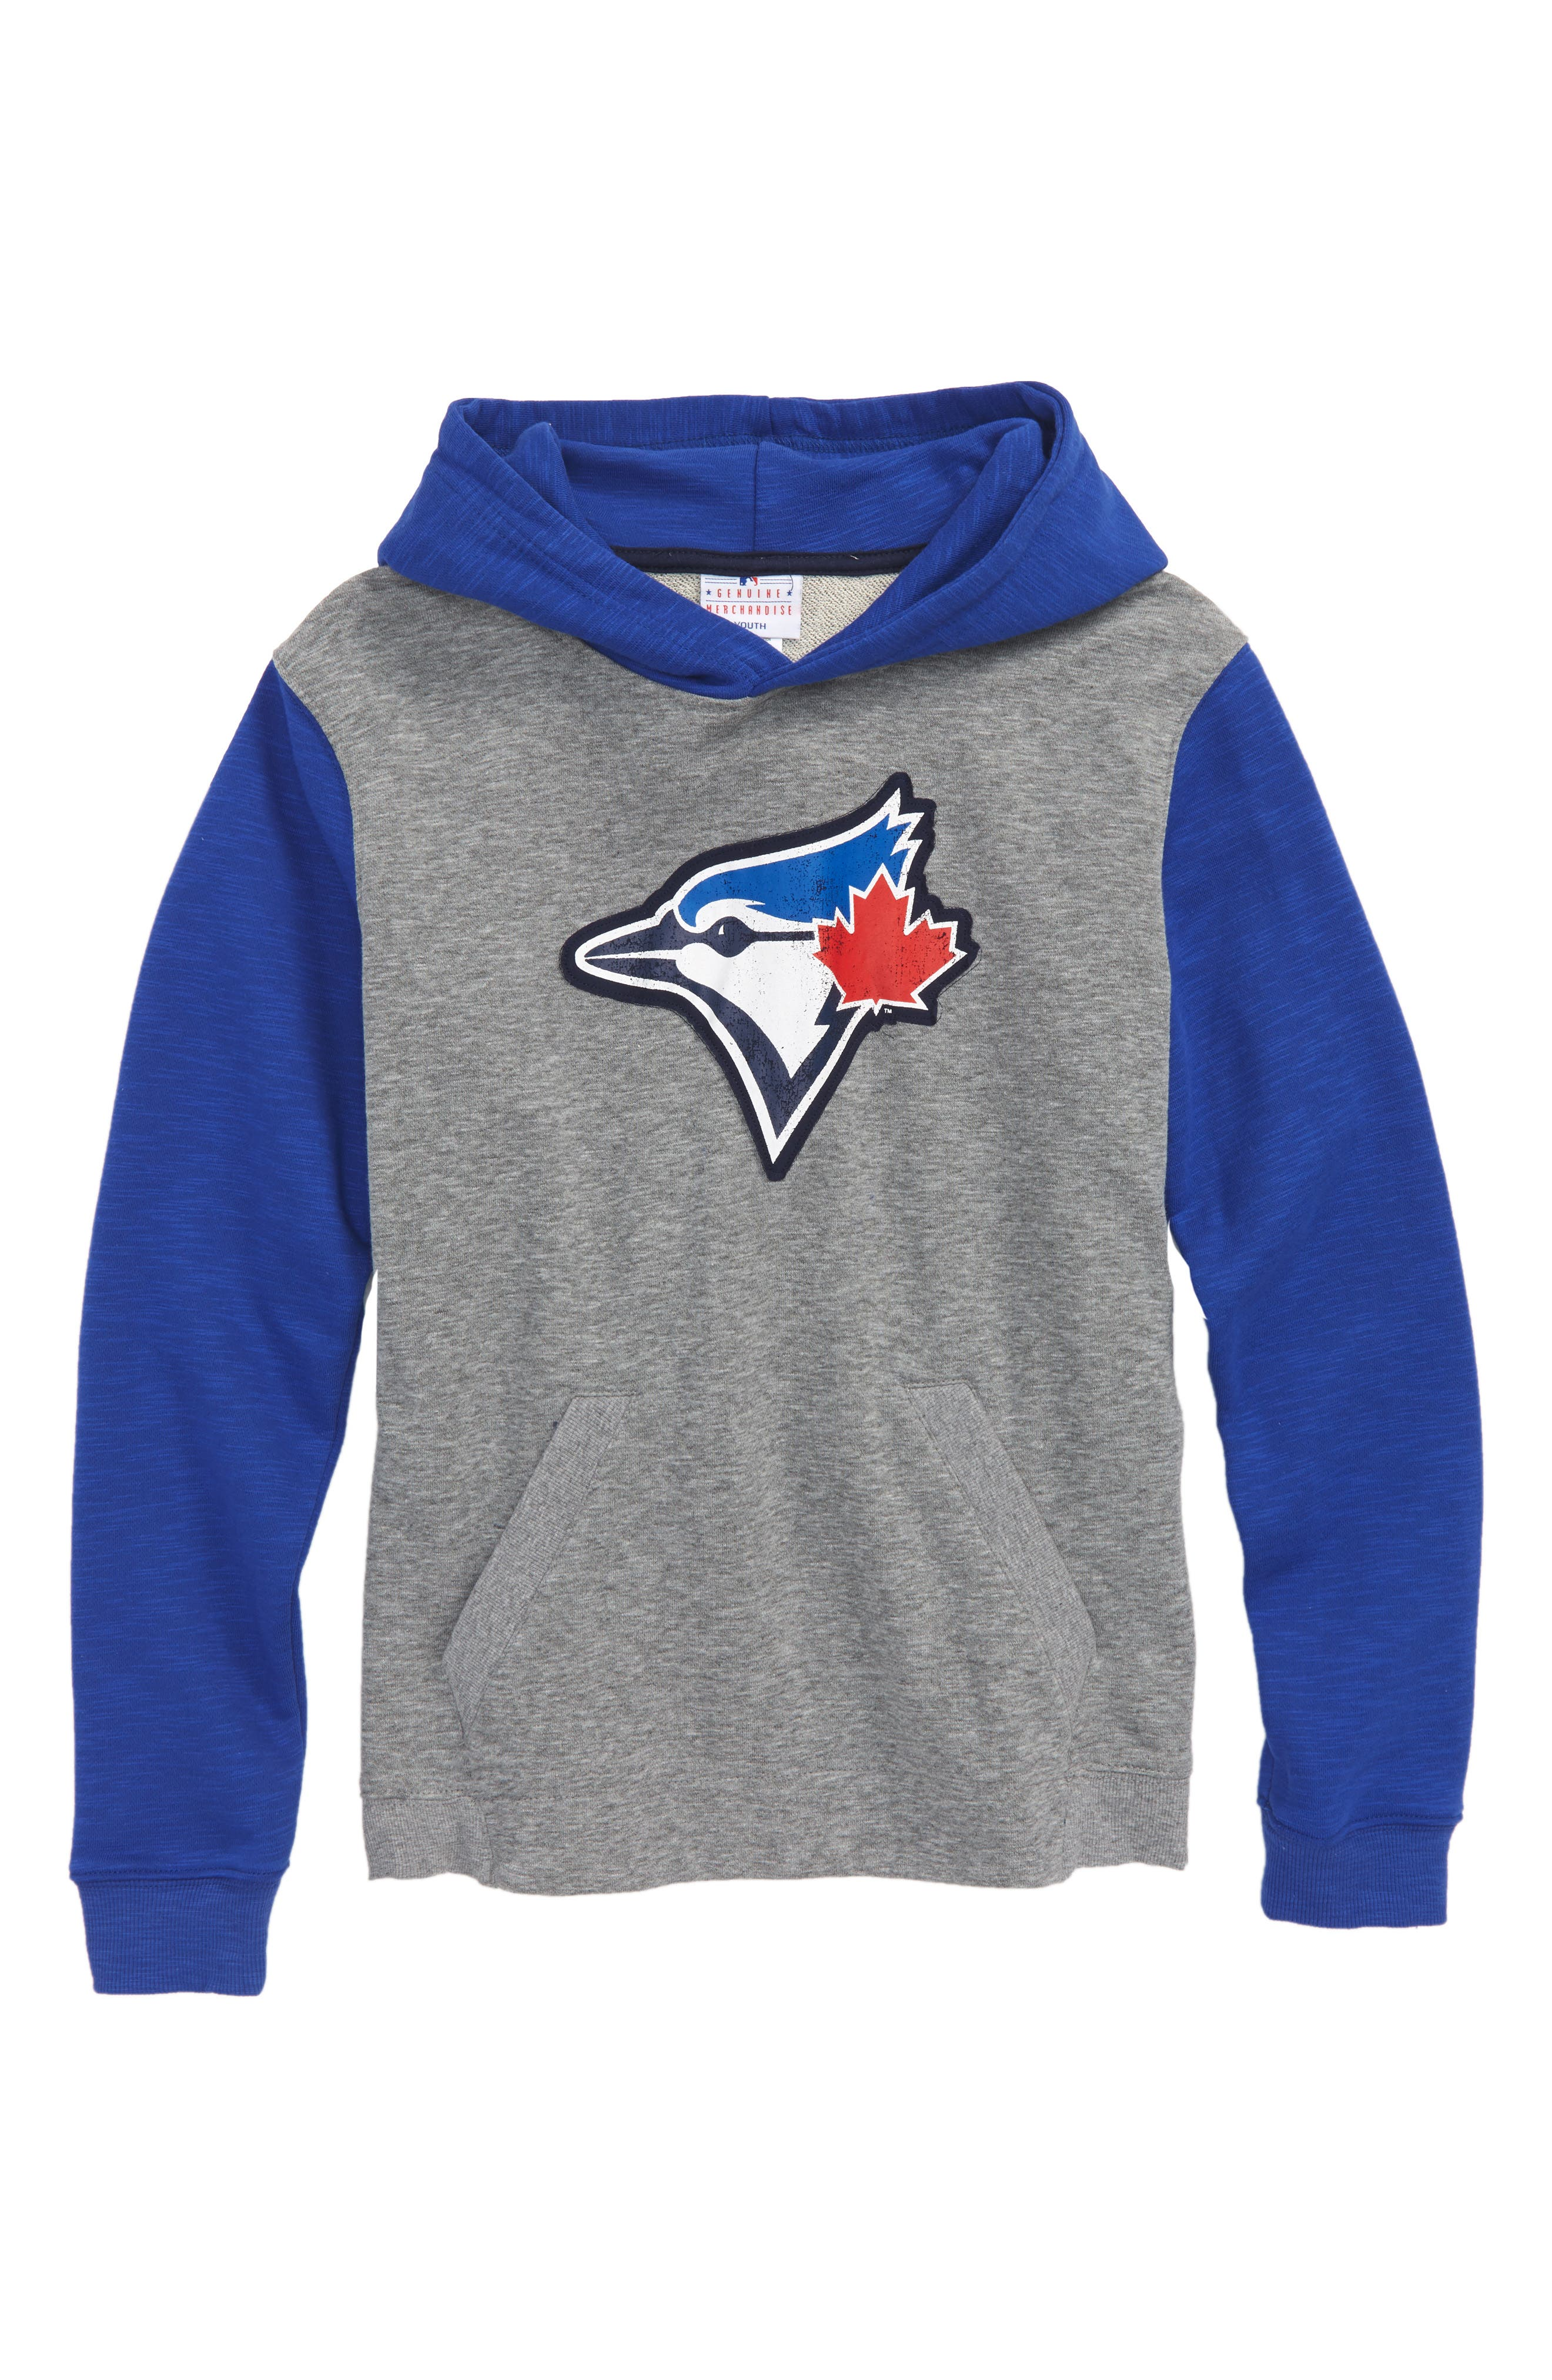 New Beginnings - Toronto Blue Jays Pullover Hoodie,                             Main thumbnail 1, color,